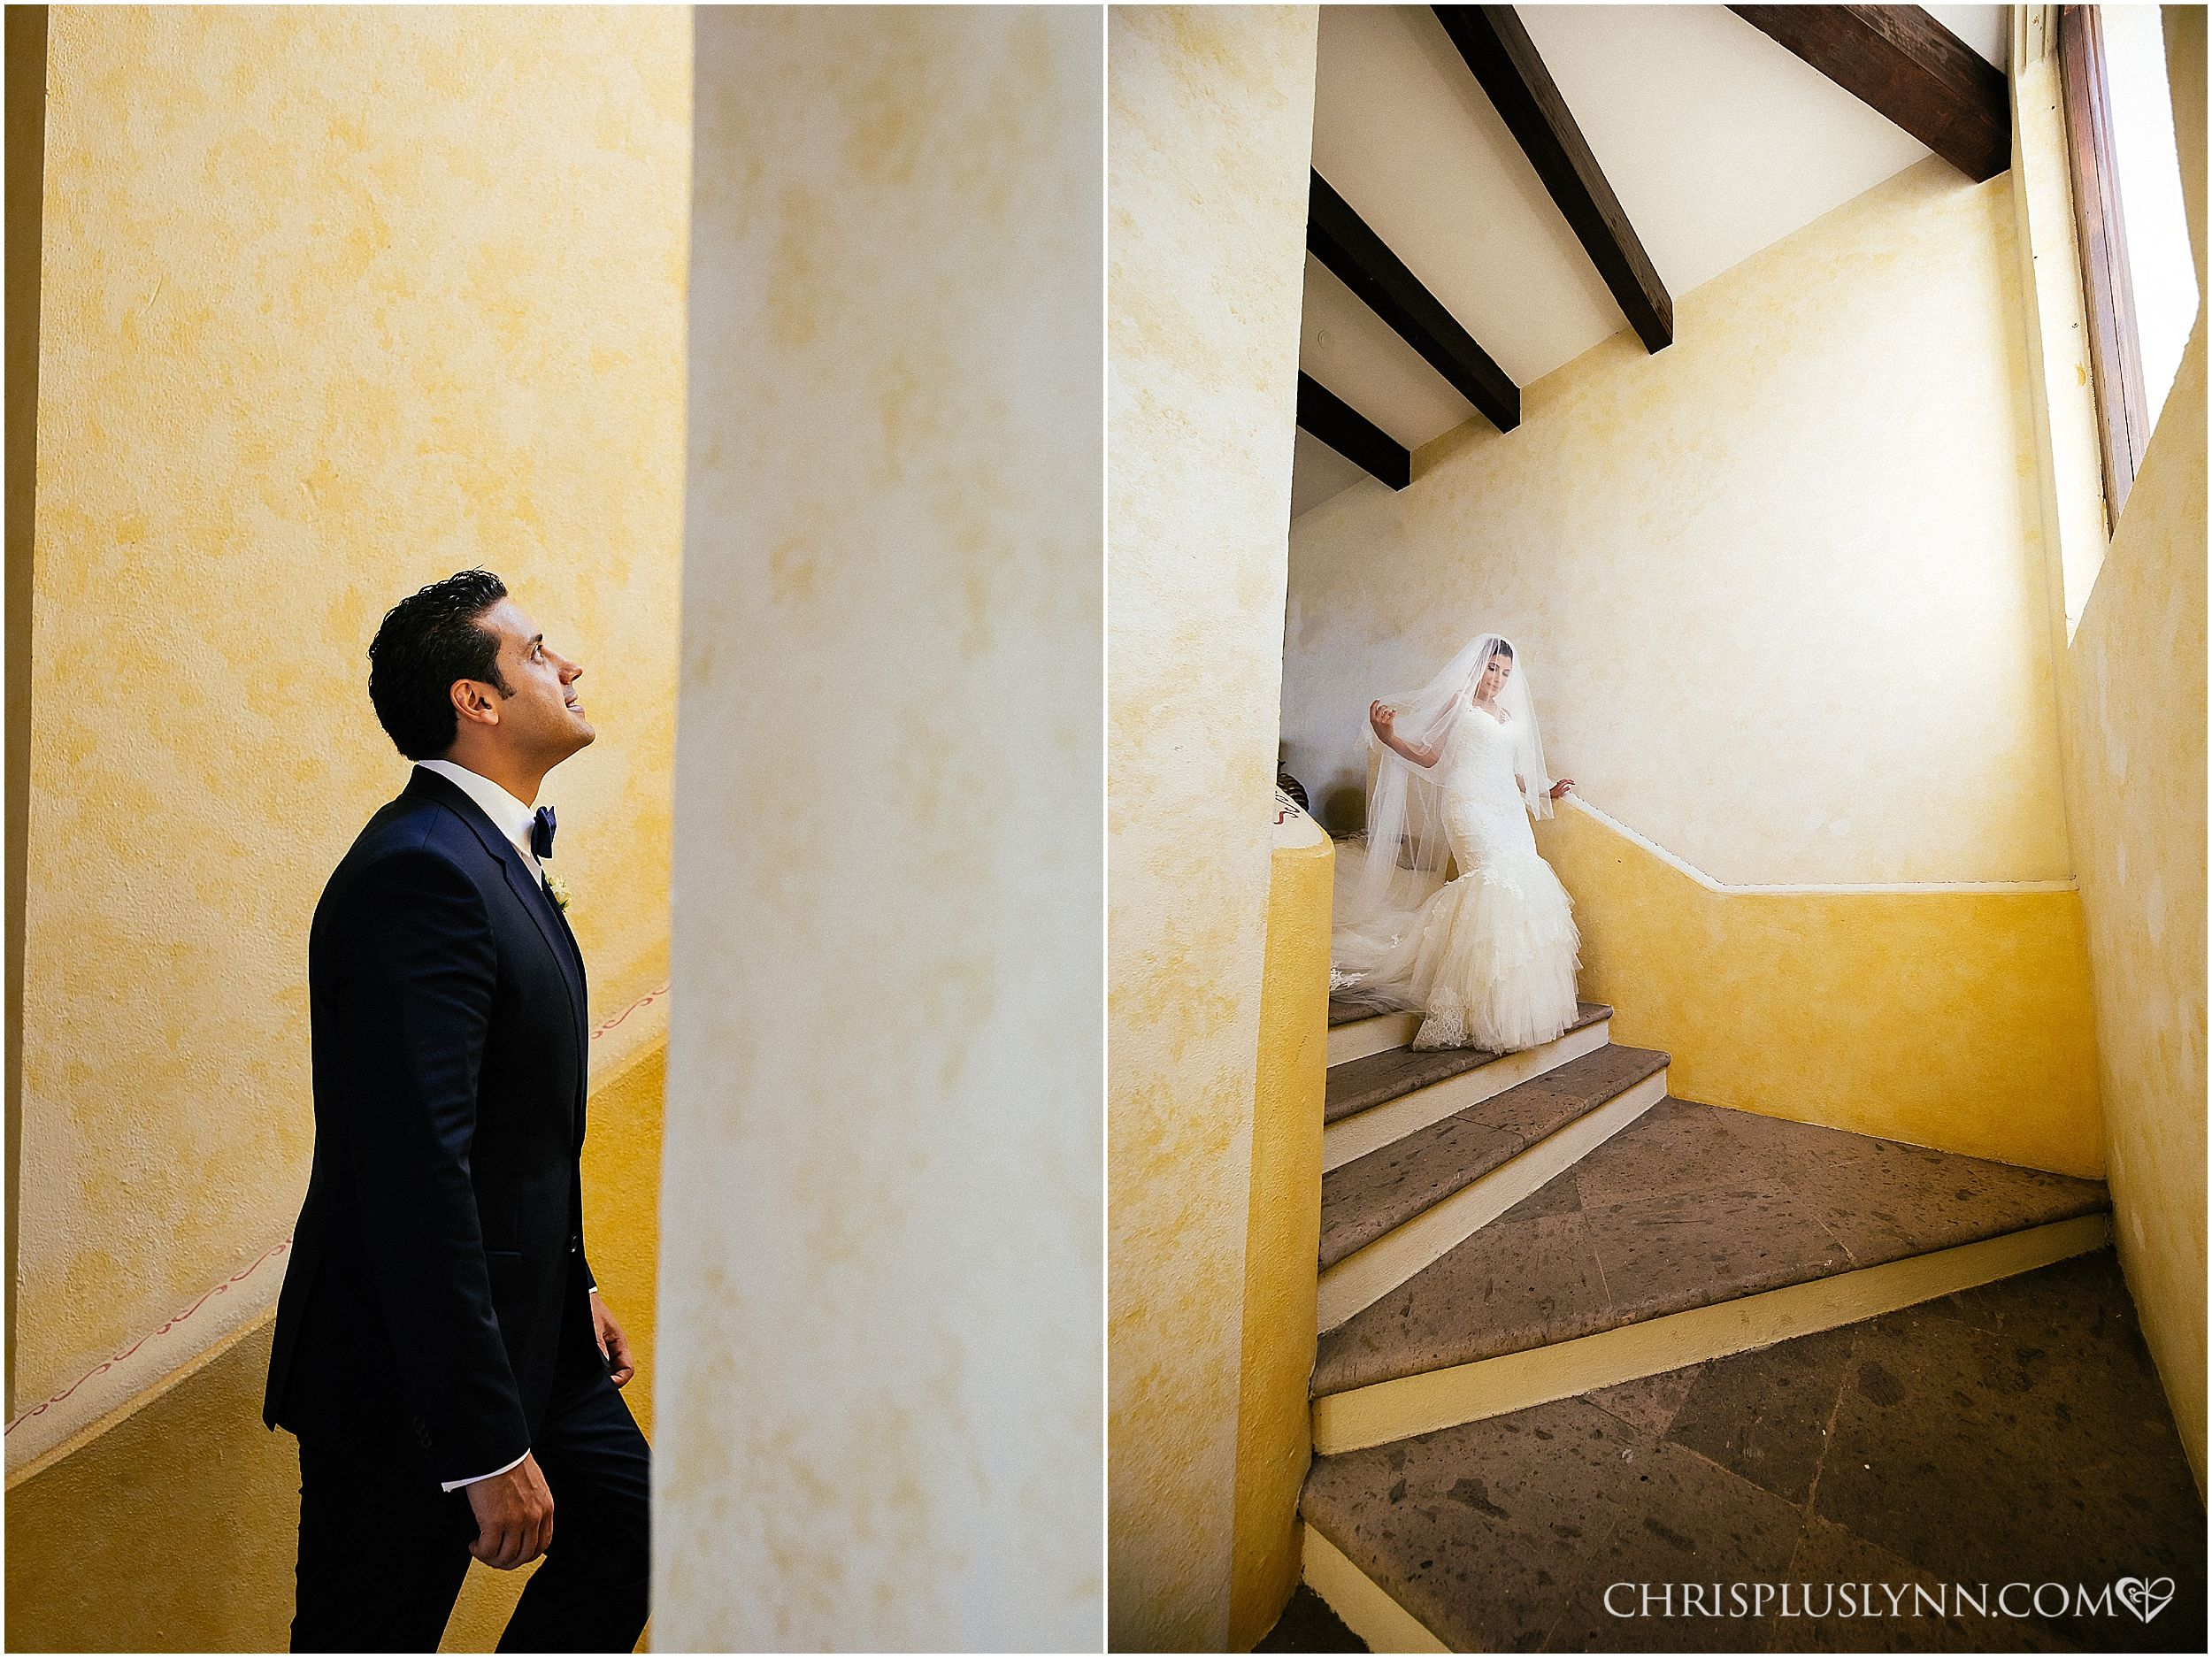 Cabo del Sol Wedding | First Look on Staircase